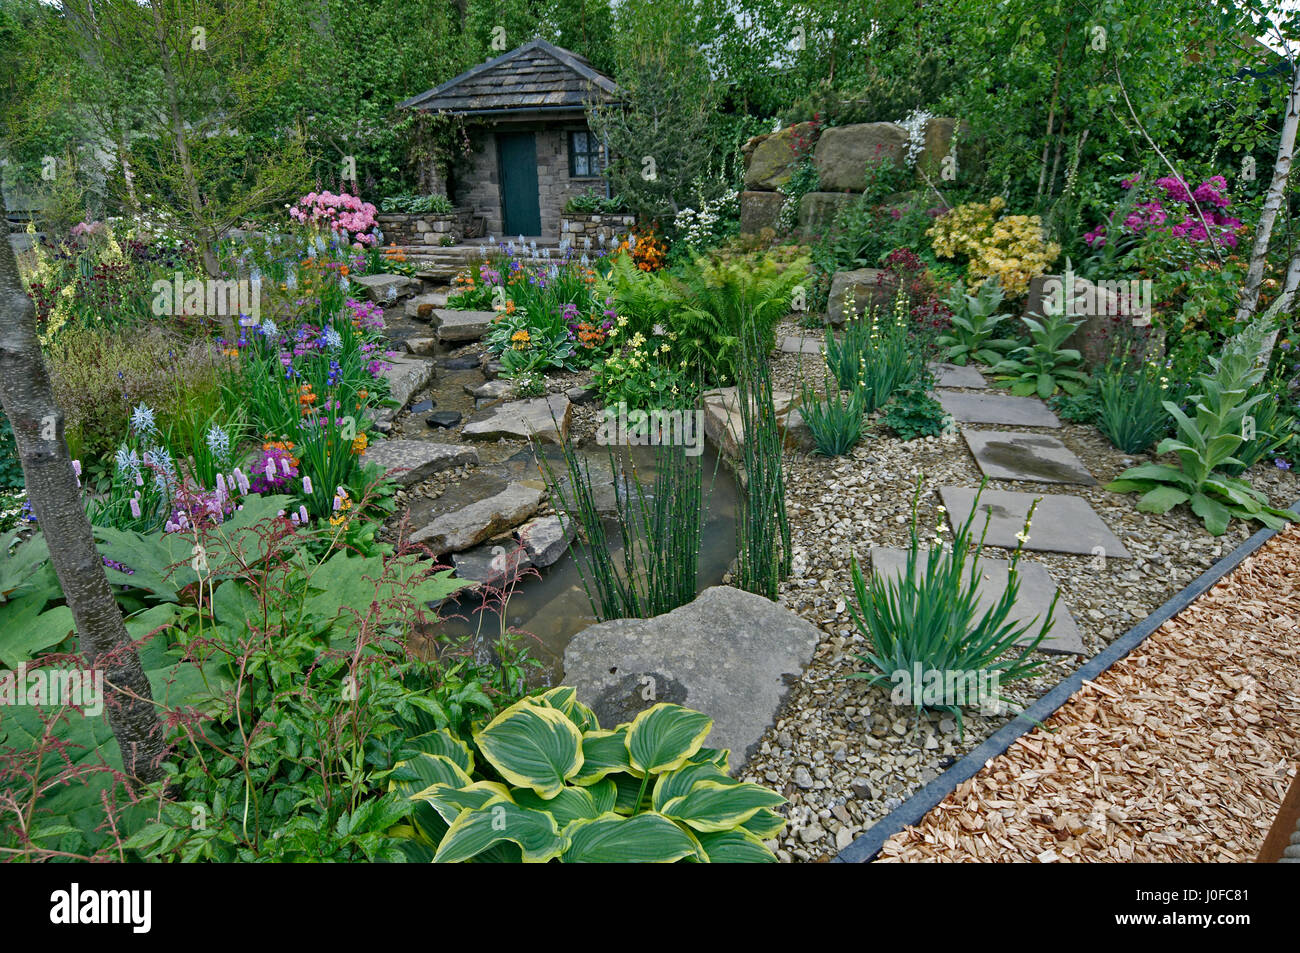 Country cottage garden - A Country Cottage Garden In A Wooded Rockery With Colourful Planting Stock Photo